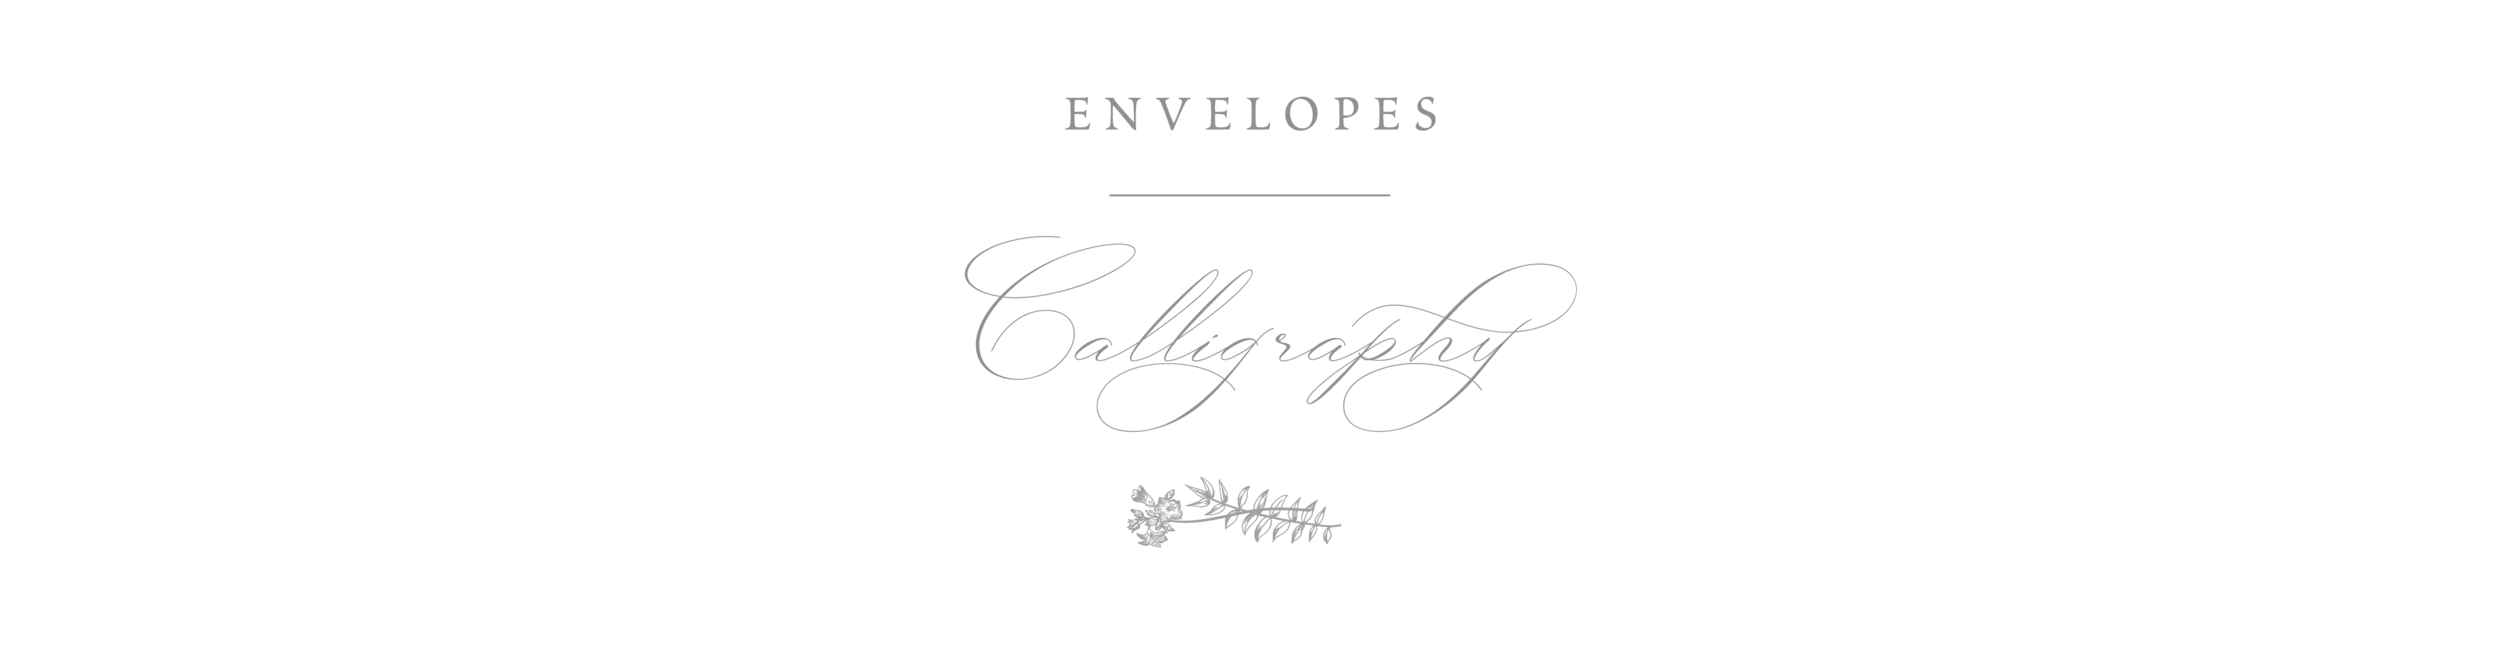 Envelopes-Calligraphy.png